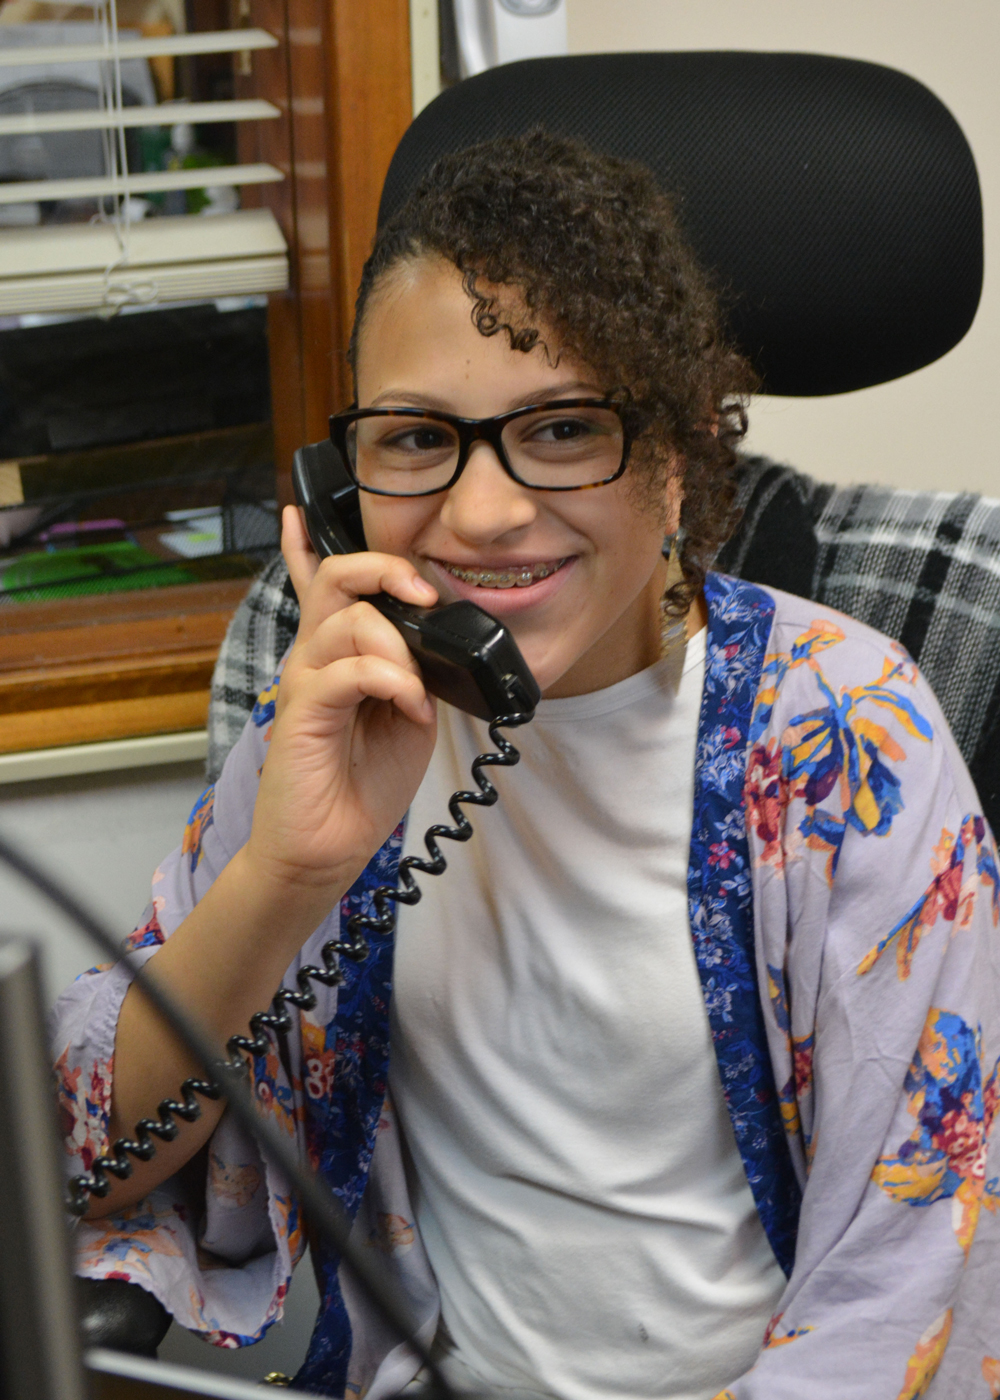 Smiling young woman seated in desk chair talks on the phone